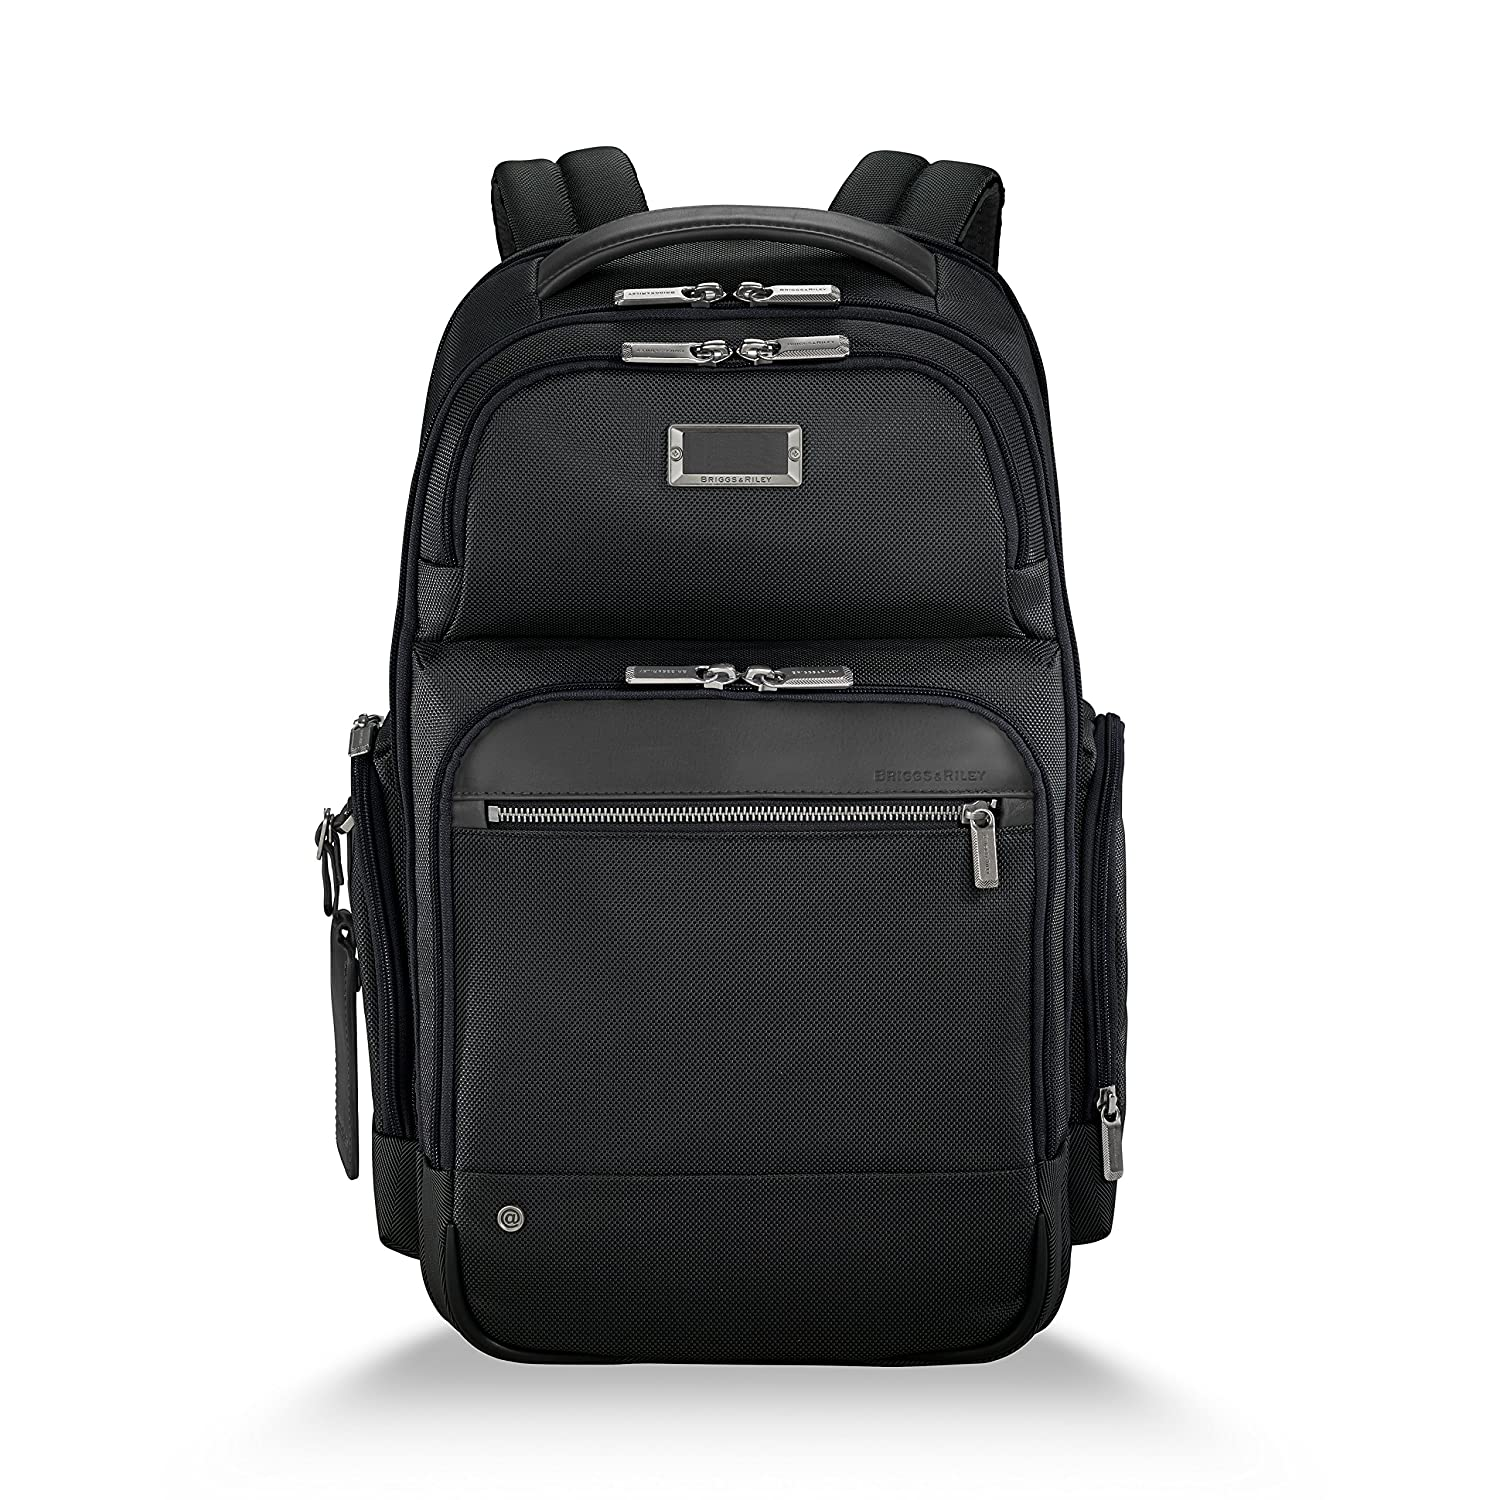 Briggs Riley Work Laptop Backpack for women and men. Fits up to 15.6 inch laptop. Business Travel Laptop Backpack with RFID Blocking Pocket, Black